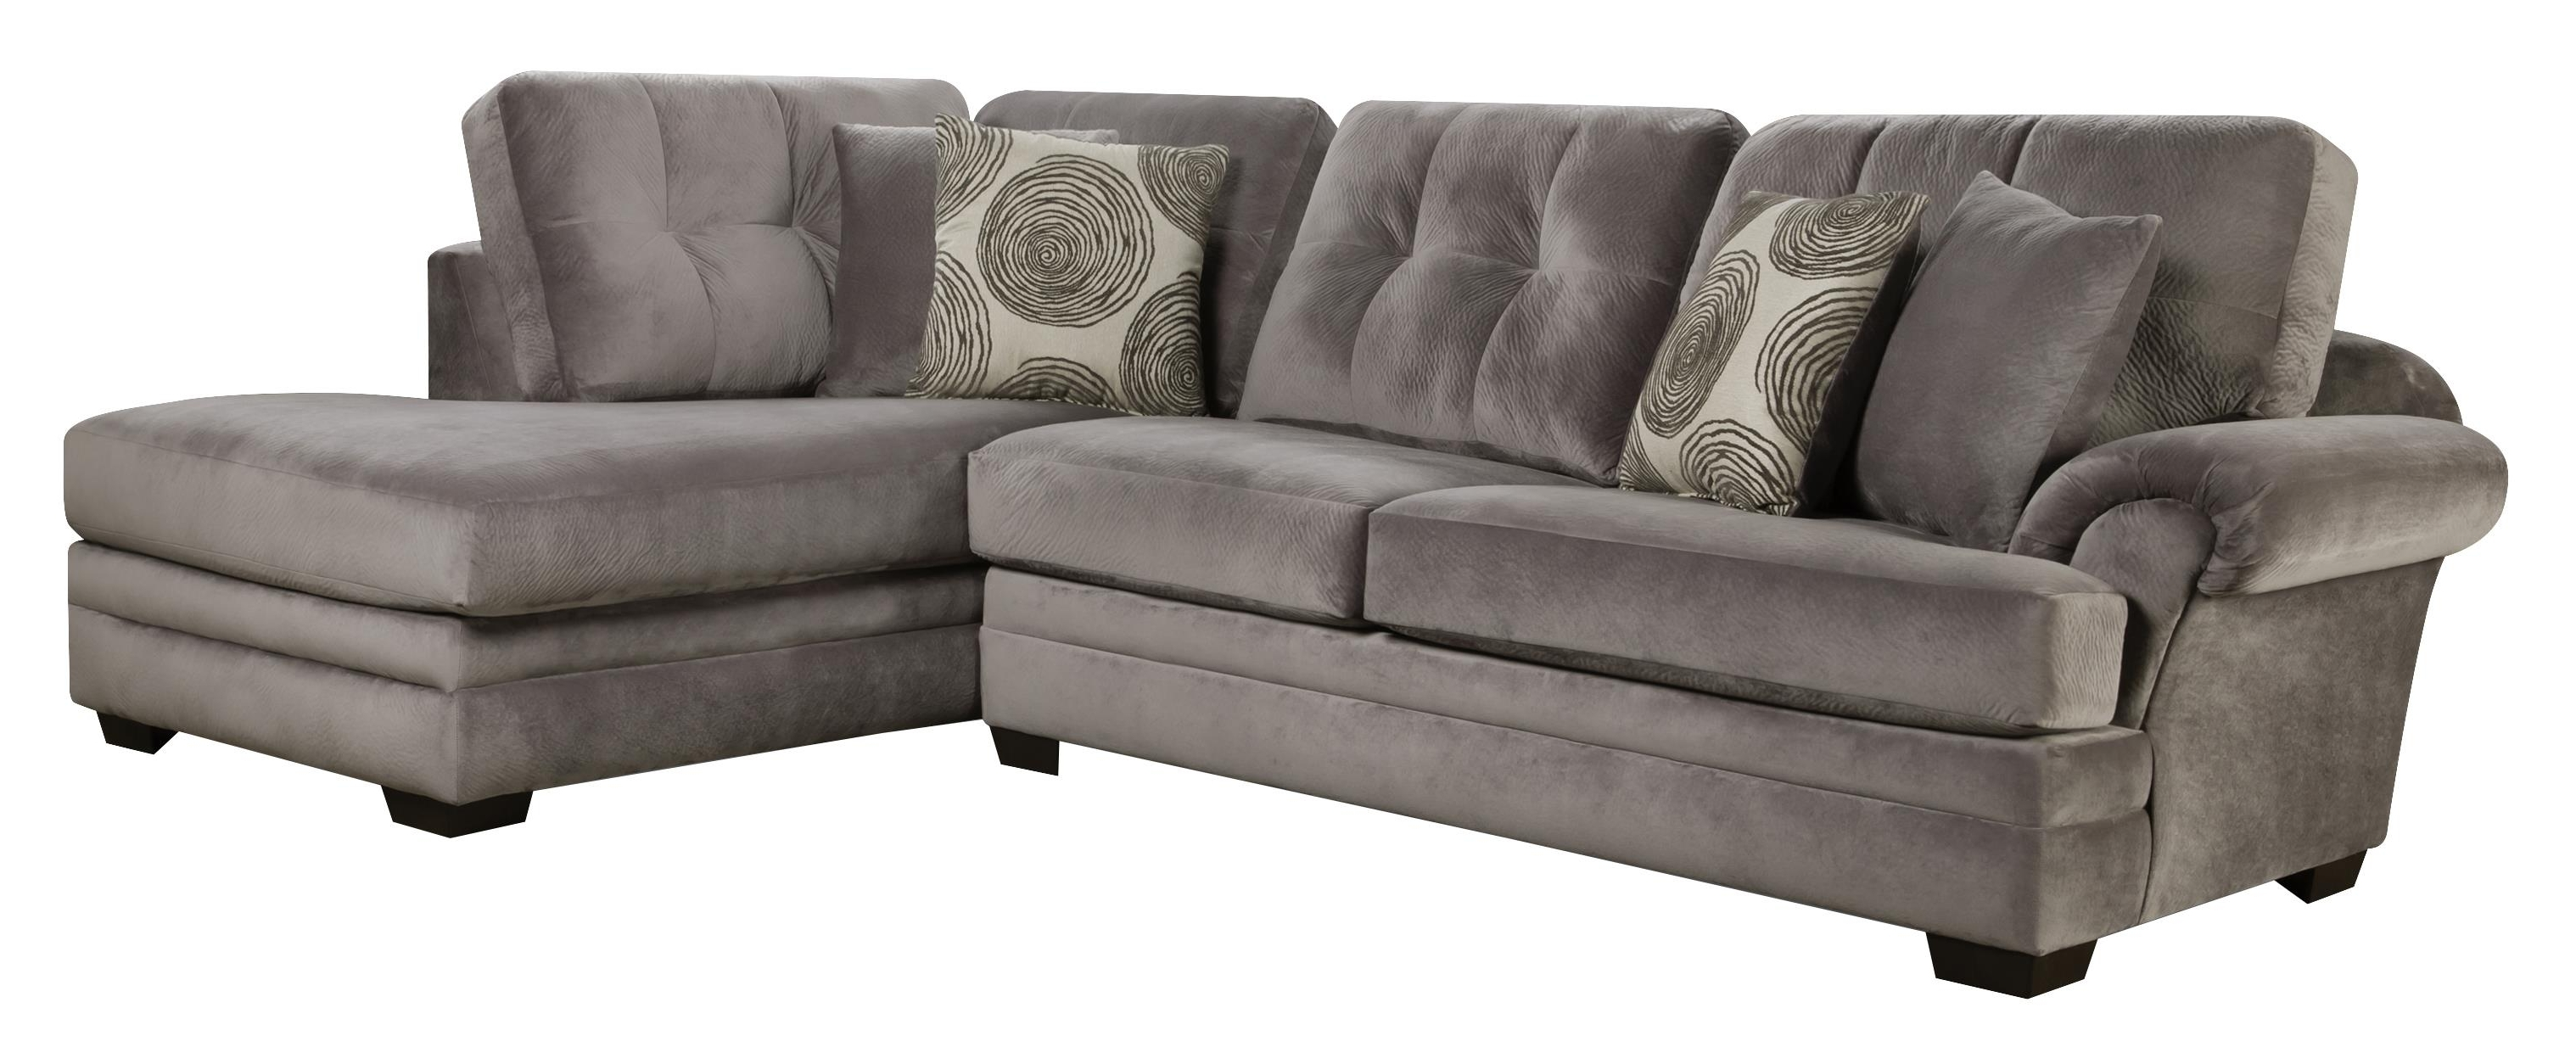 Sectional Sofa With Chaise (On Right Side)Corinthian (View 10 of 15)